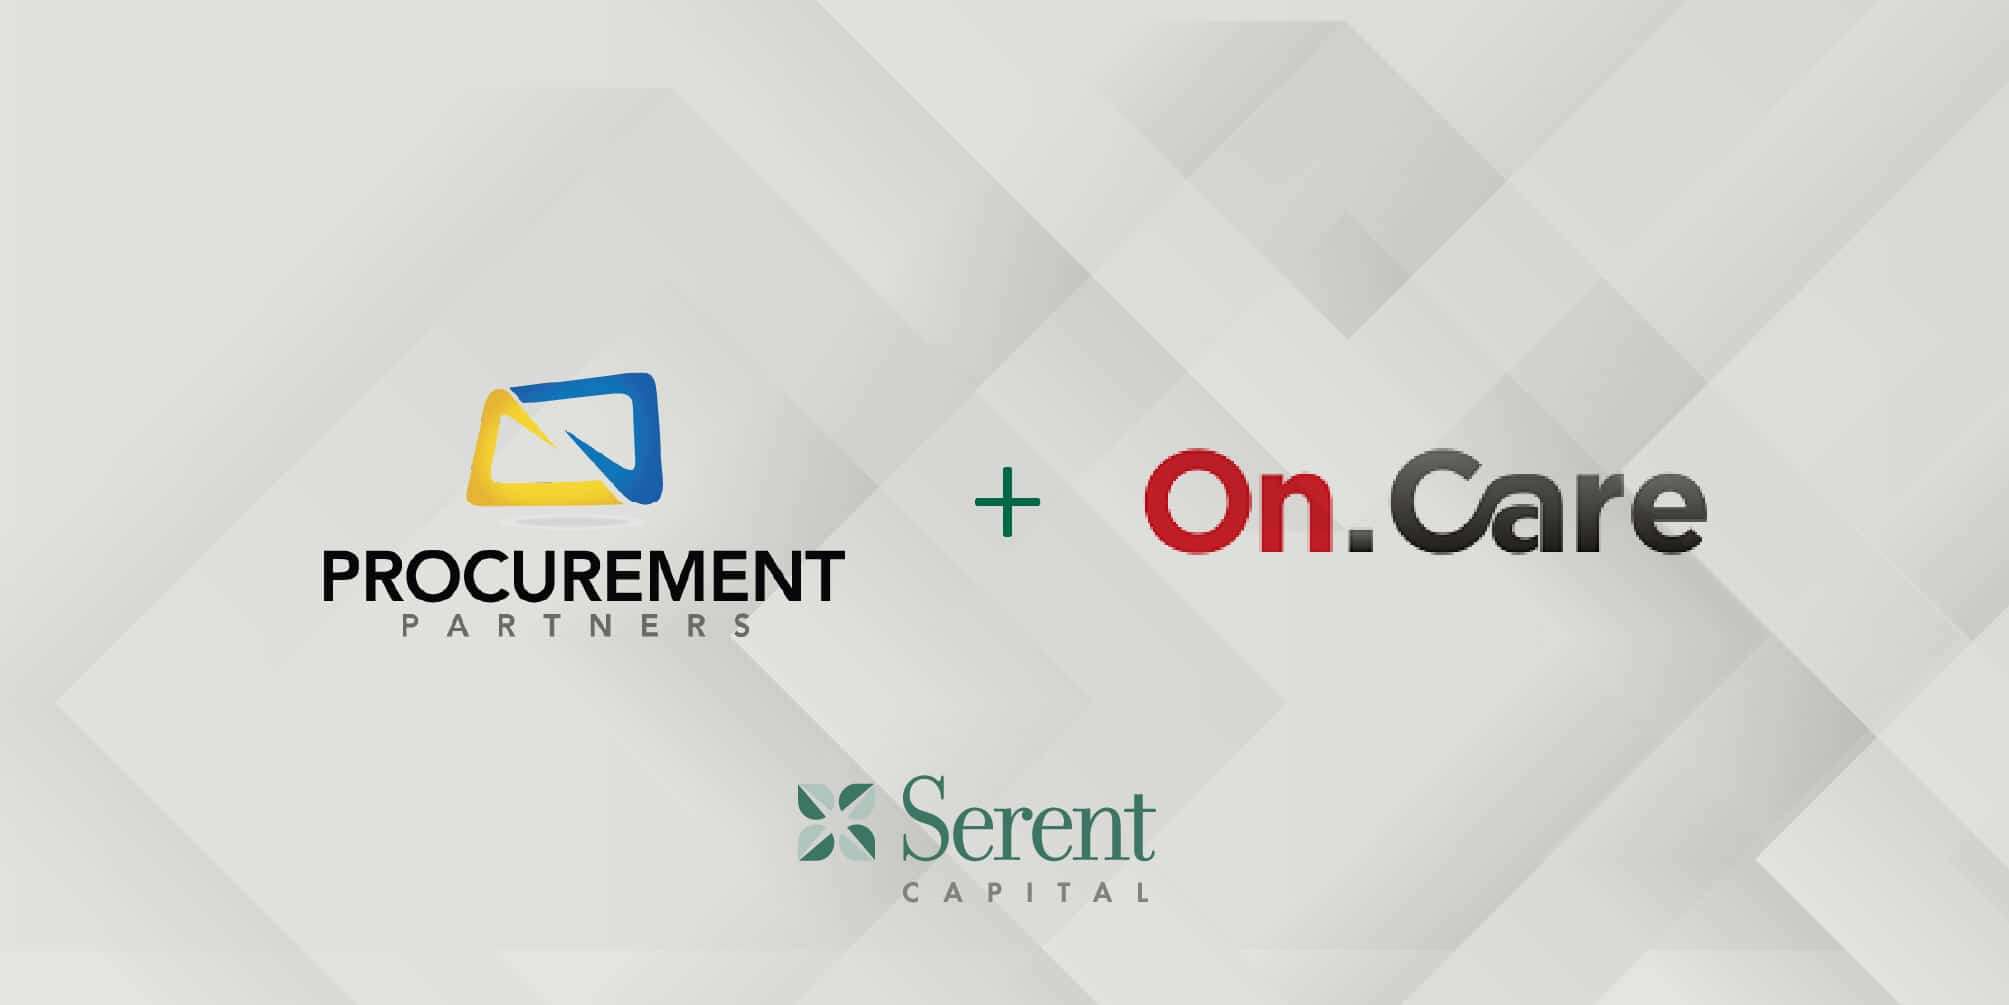 Procurement Partners Acquires On.Care to Provide World-Class E-Procurement Solution for Healthcare Providers